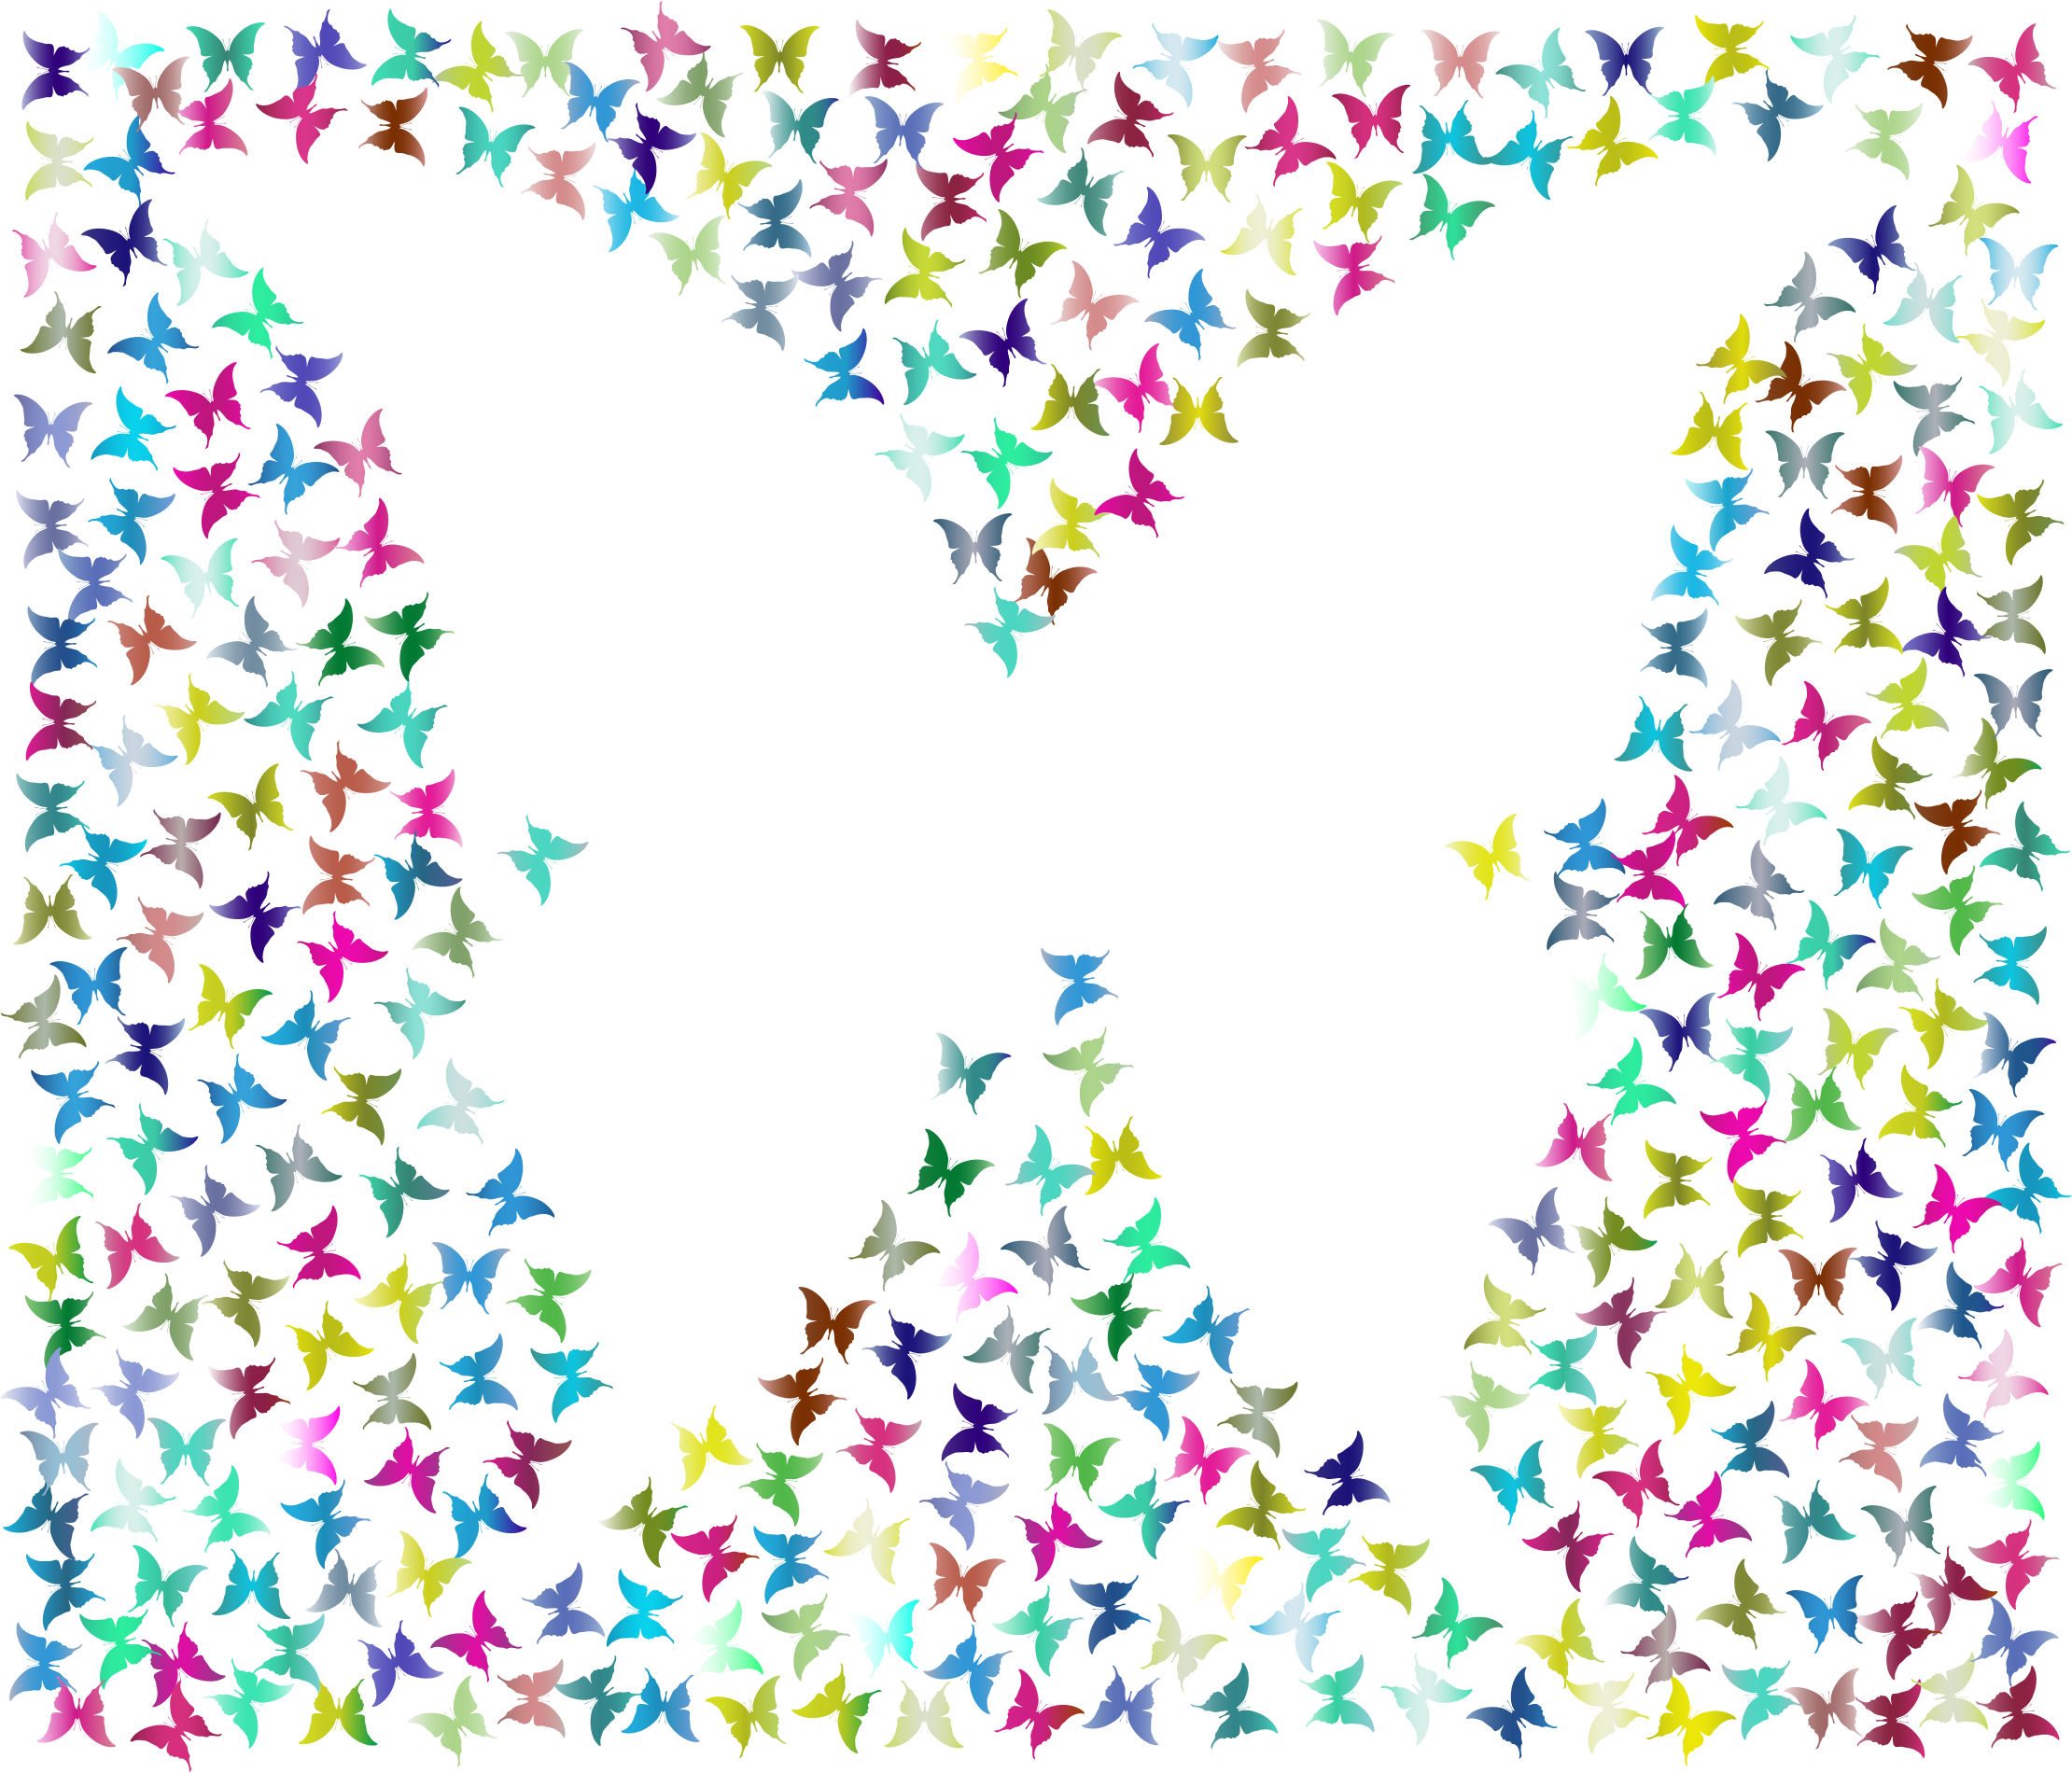 Prismatic Negative Space Butterflies 2 No Background by GDJ